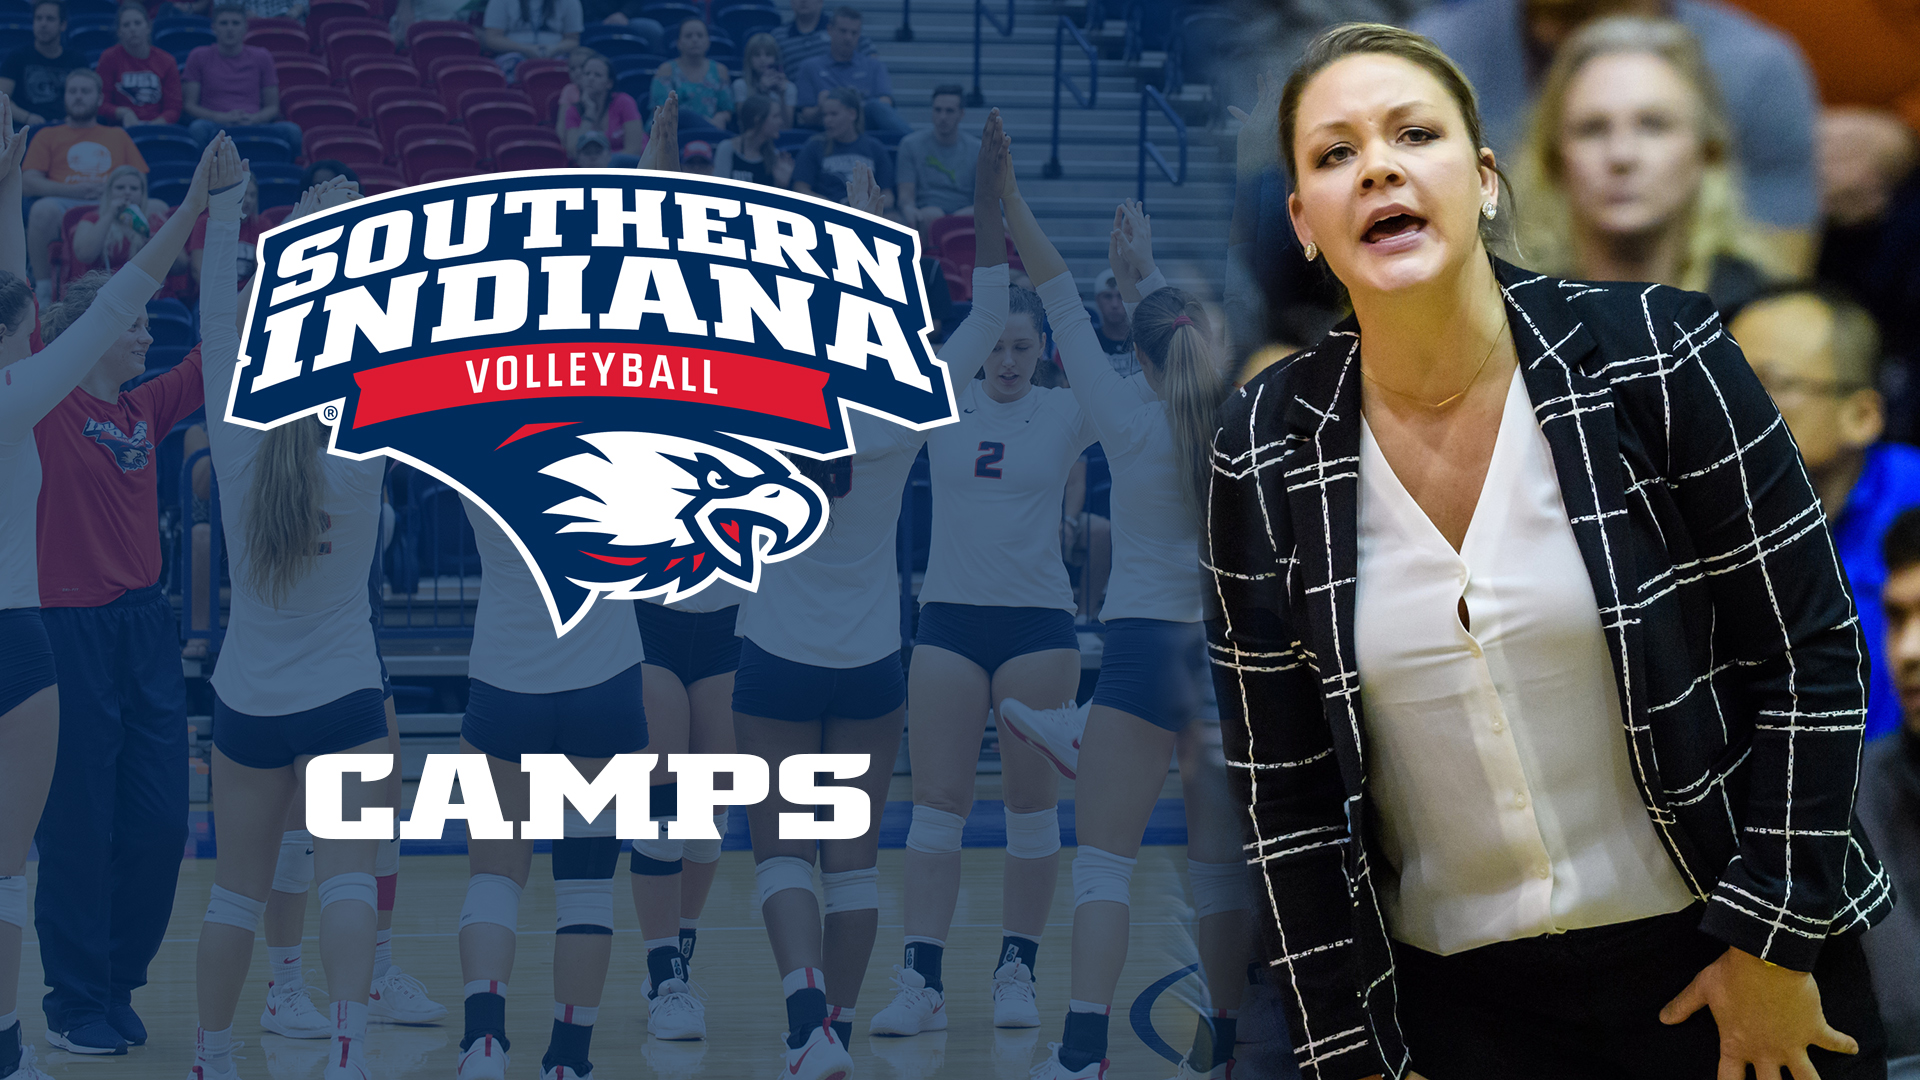 Southern Indiana Volleyball Camp Registration Open University Of Southern Indiana Athletics